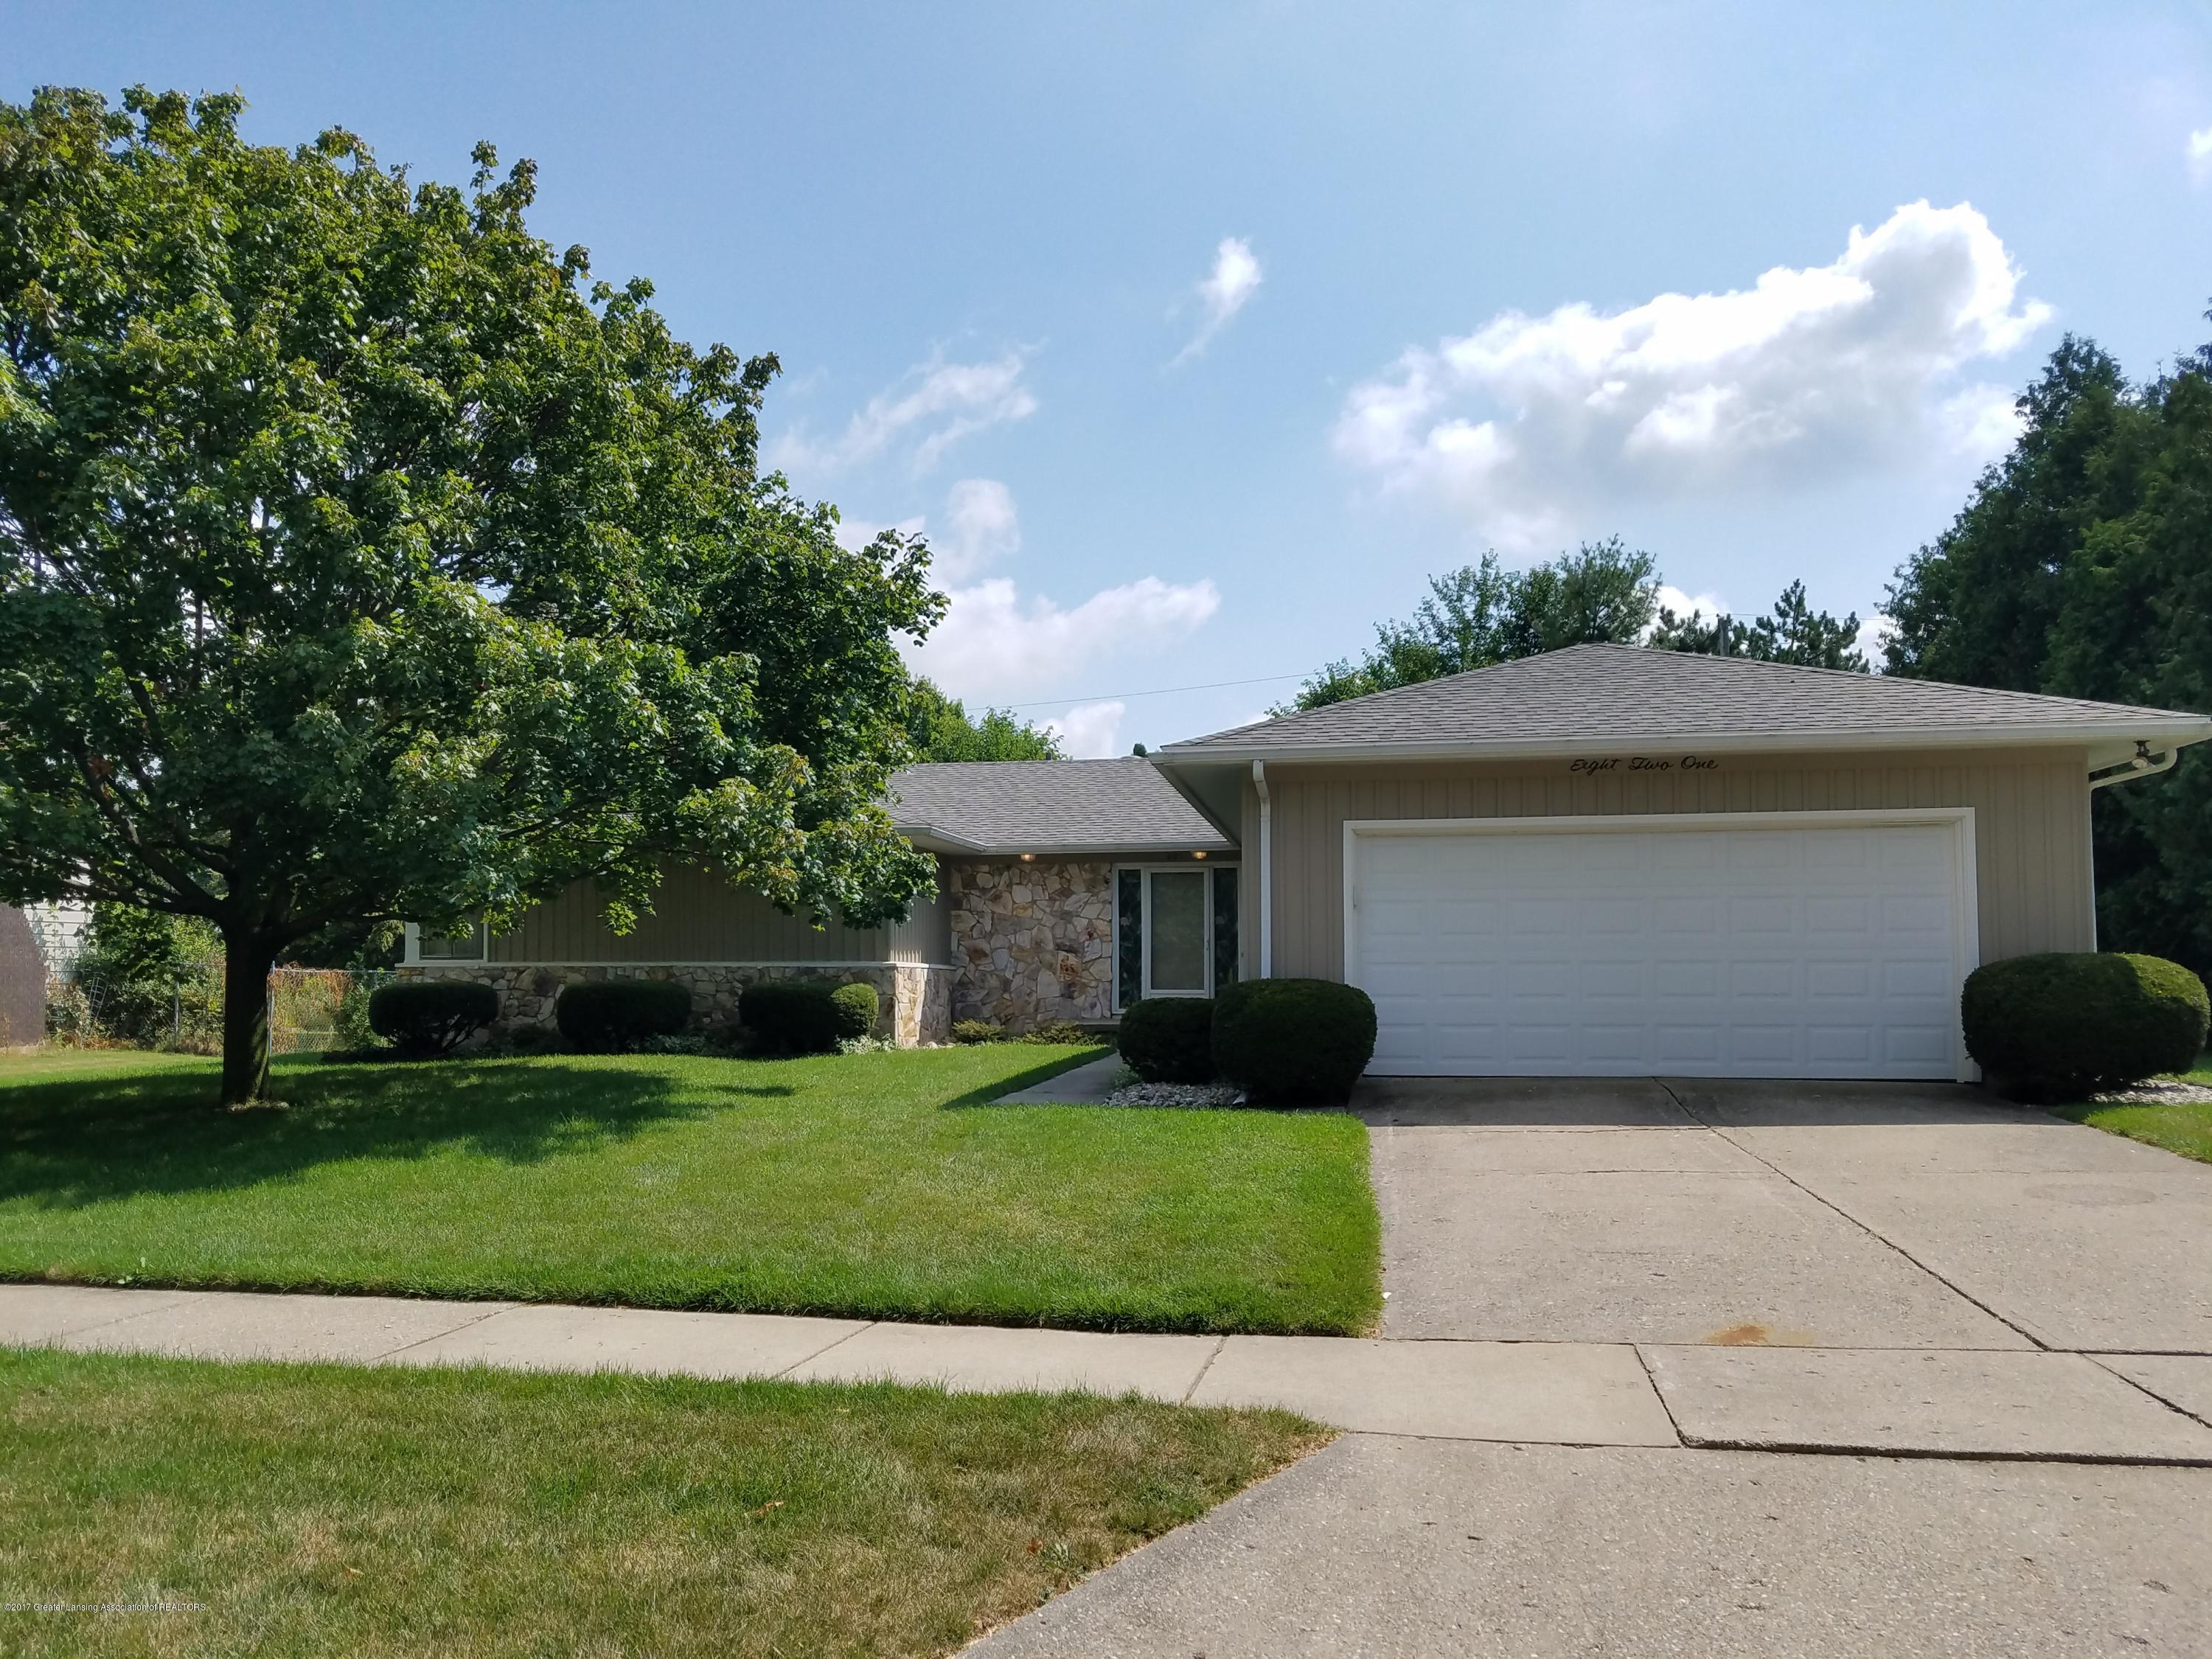 821 Chesley Dr - 2017-08-15 12.04.00 - 1